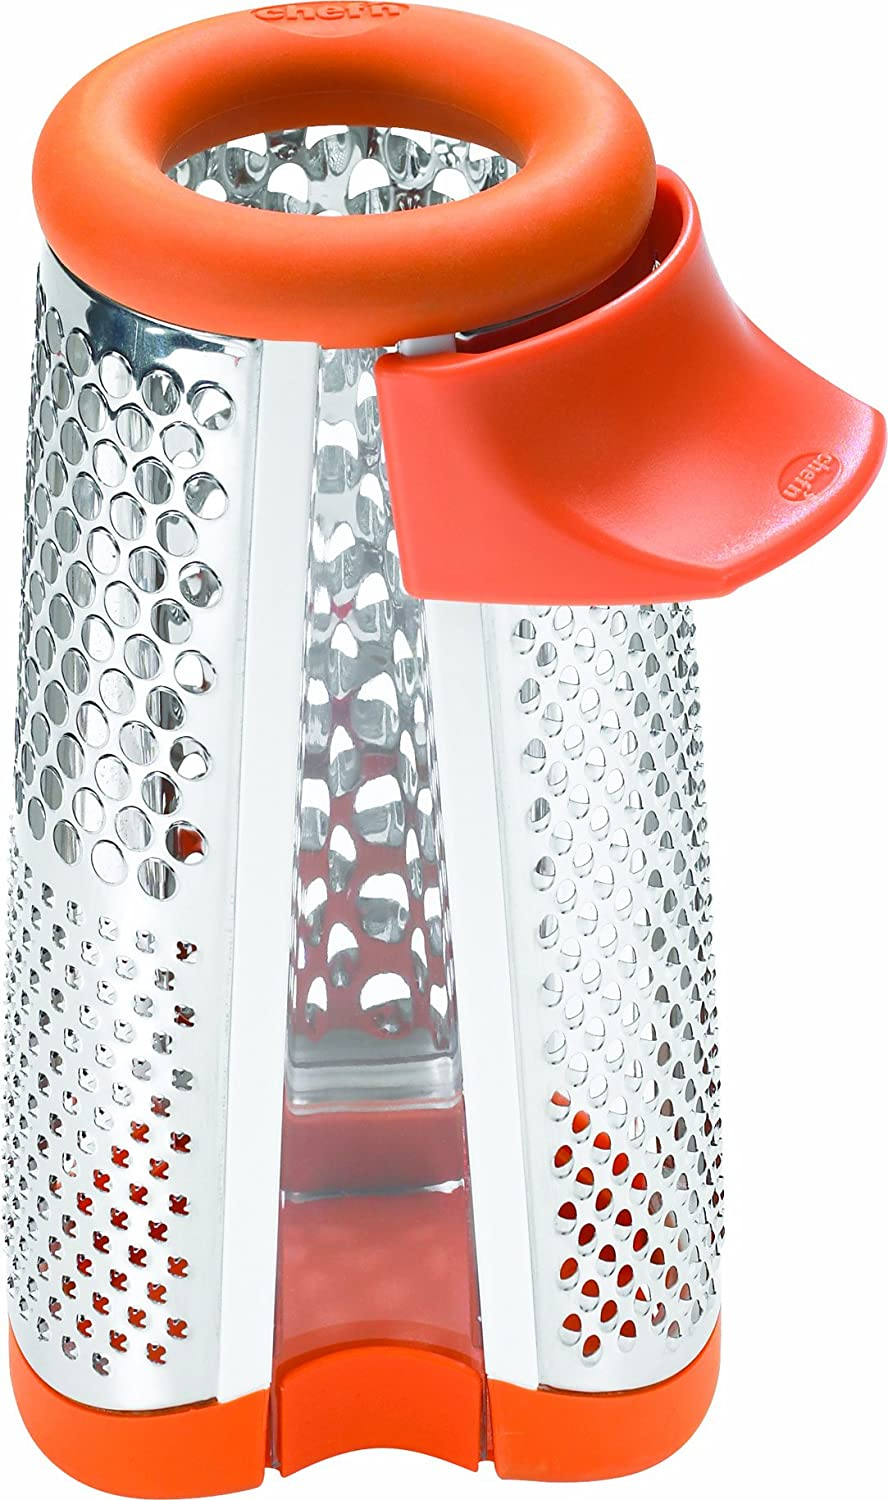 Chef'n Tower Grater 4 in 1 Stainless Steel Cheese Grater, Apricot Chef'n 103-046-008